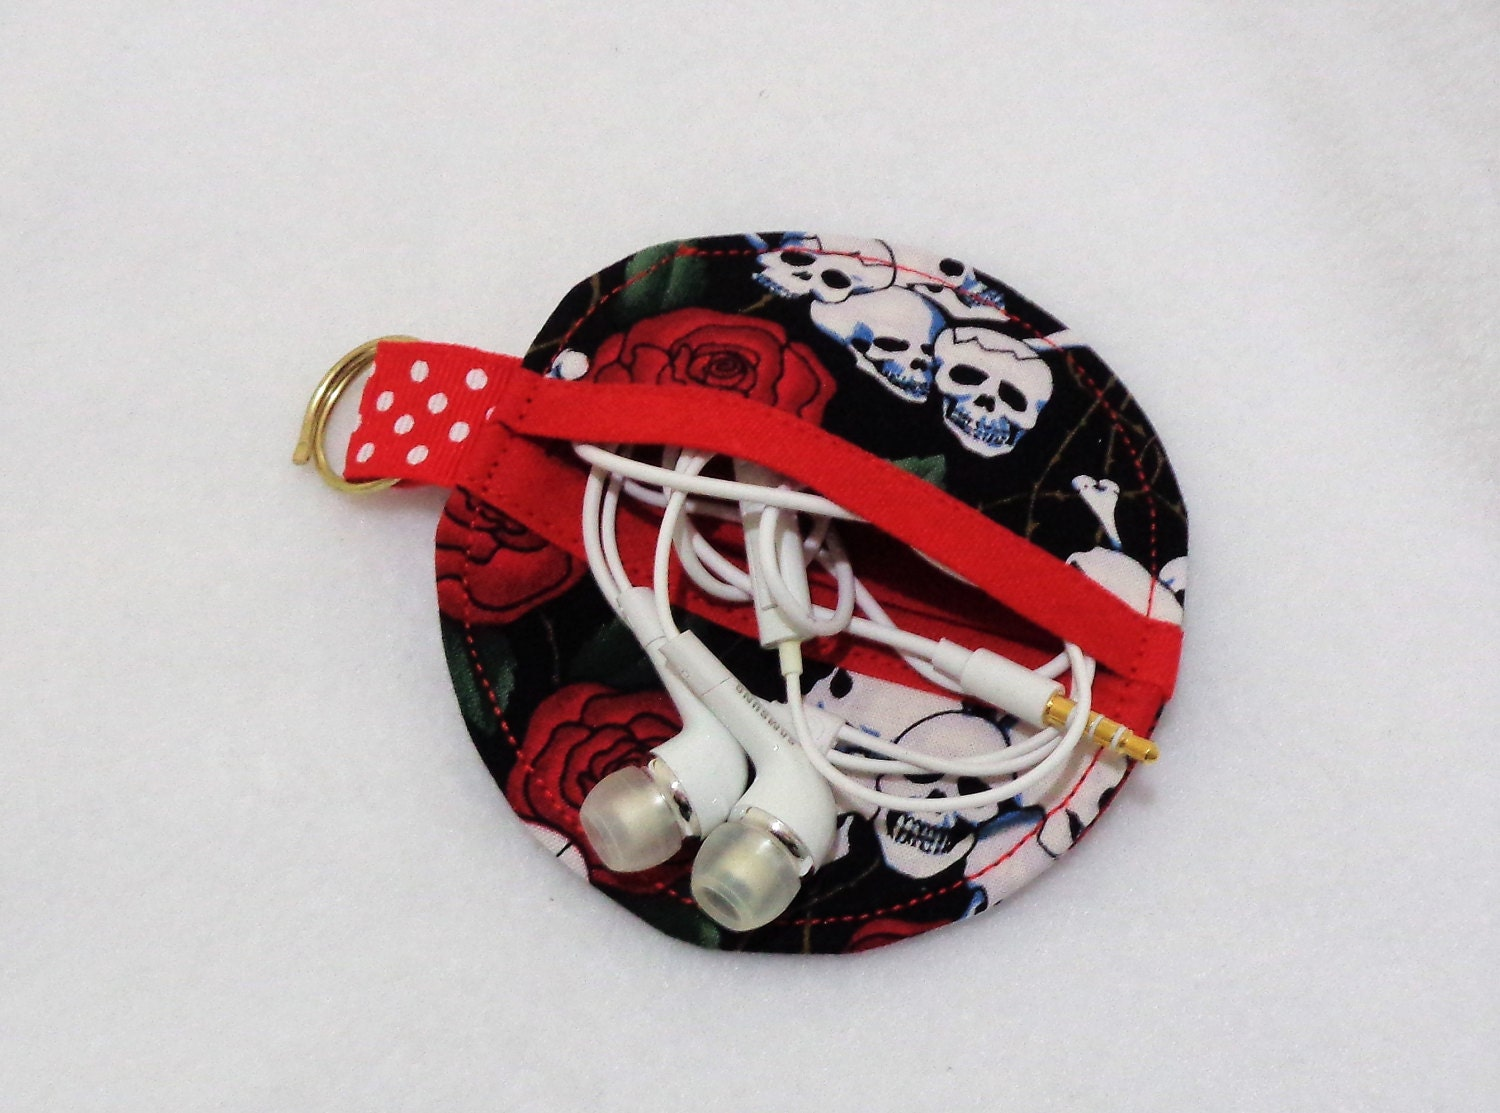 Skulls and Roses Design Ear Bud Pouch  Earbuds Protector  Ear Bud Purse  Headphone Holder  Goth Gift  Music Lovers Gift